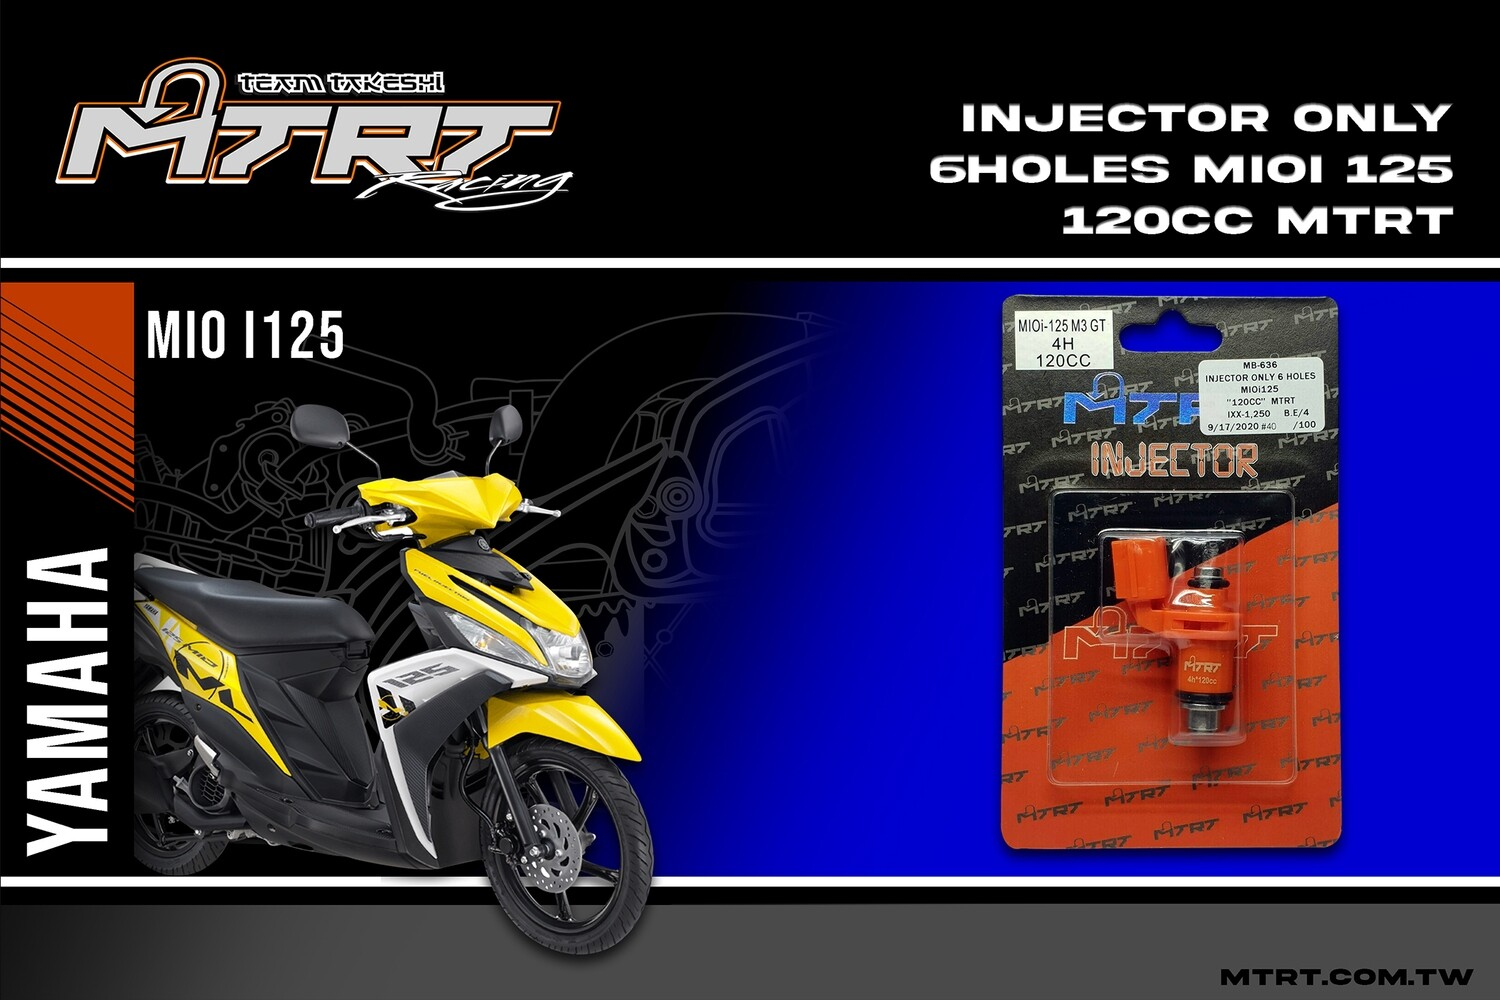 INJECTOR ONLY 6HOLES  MIOi125  120CC MTRT